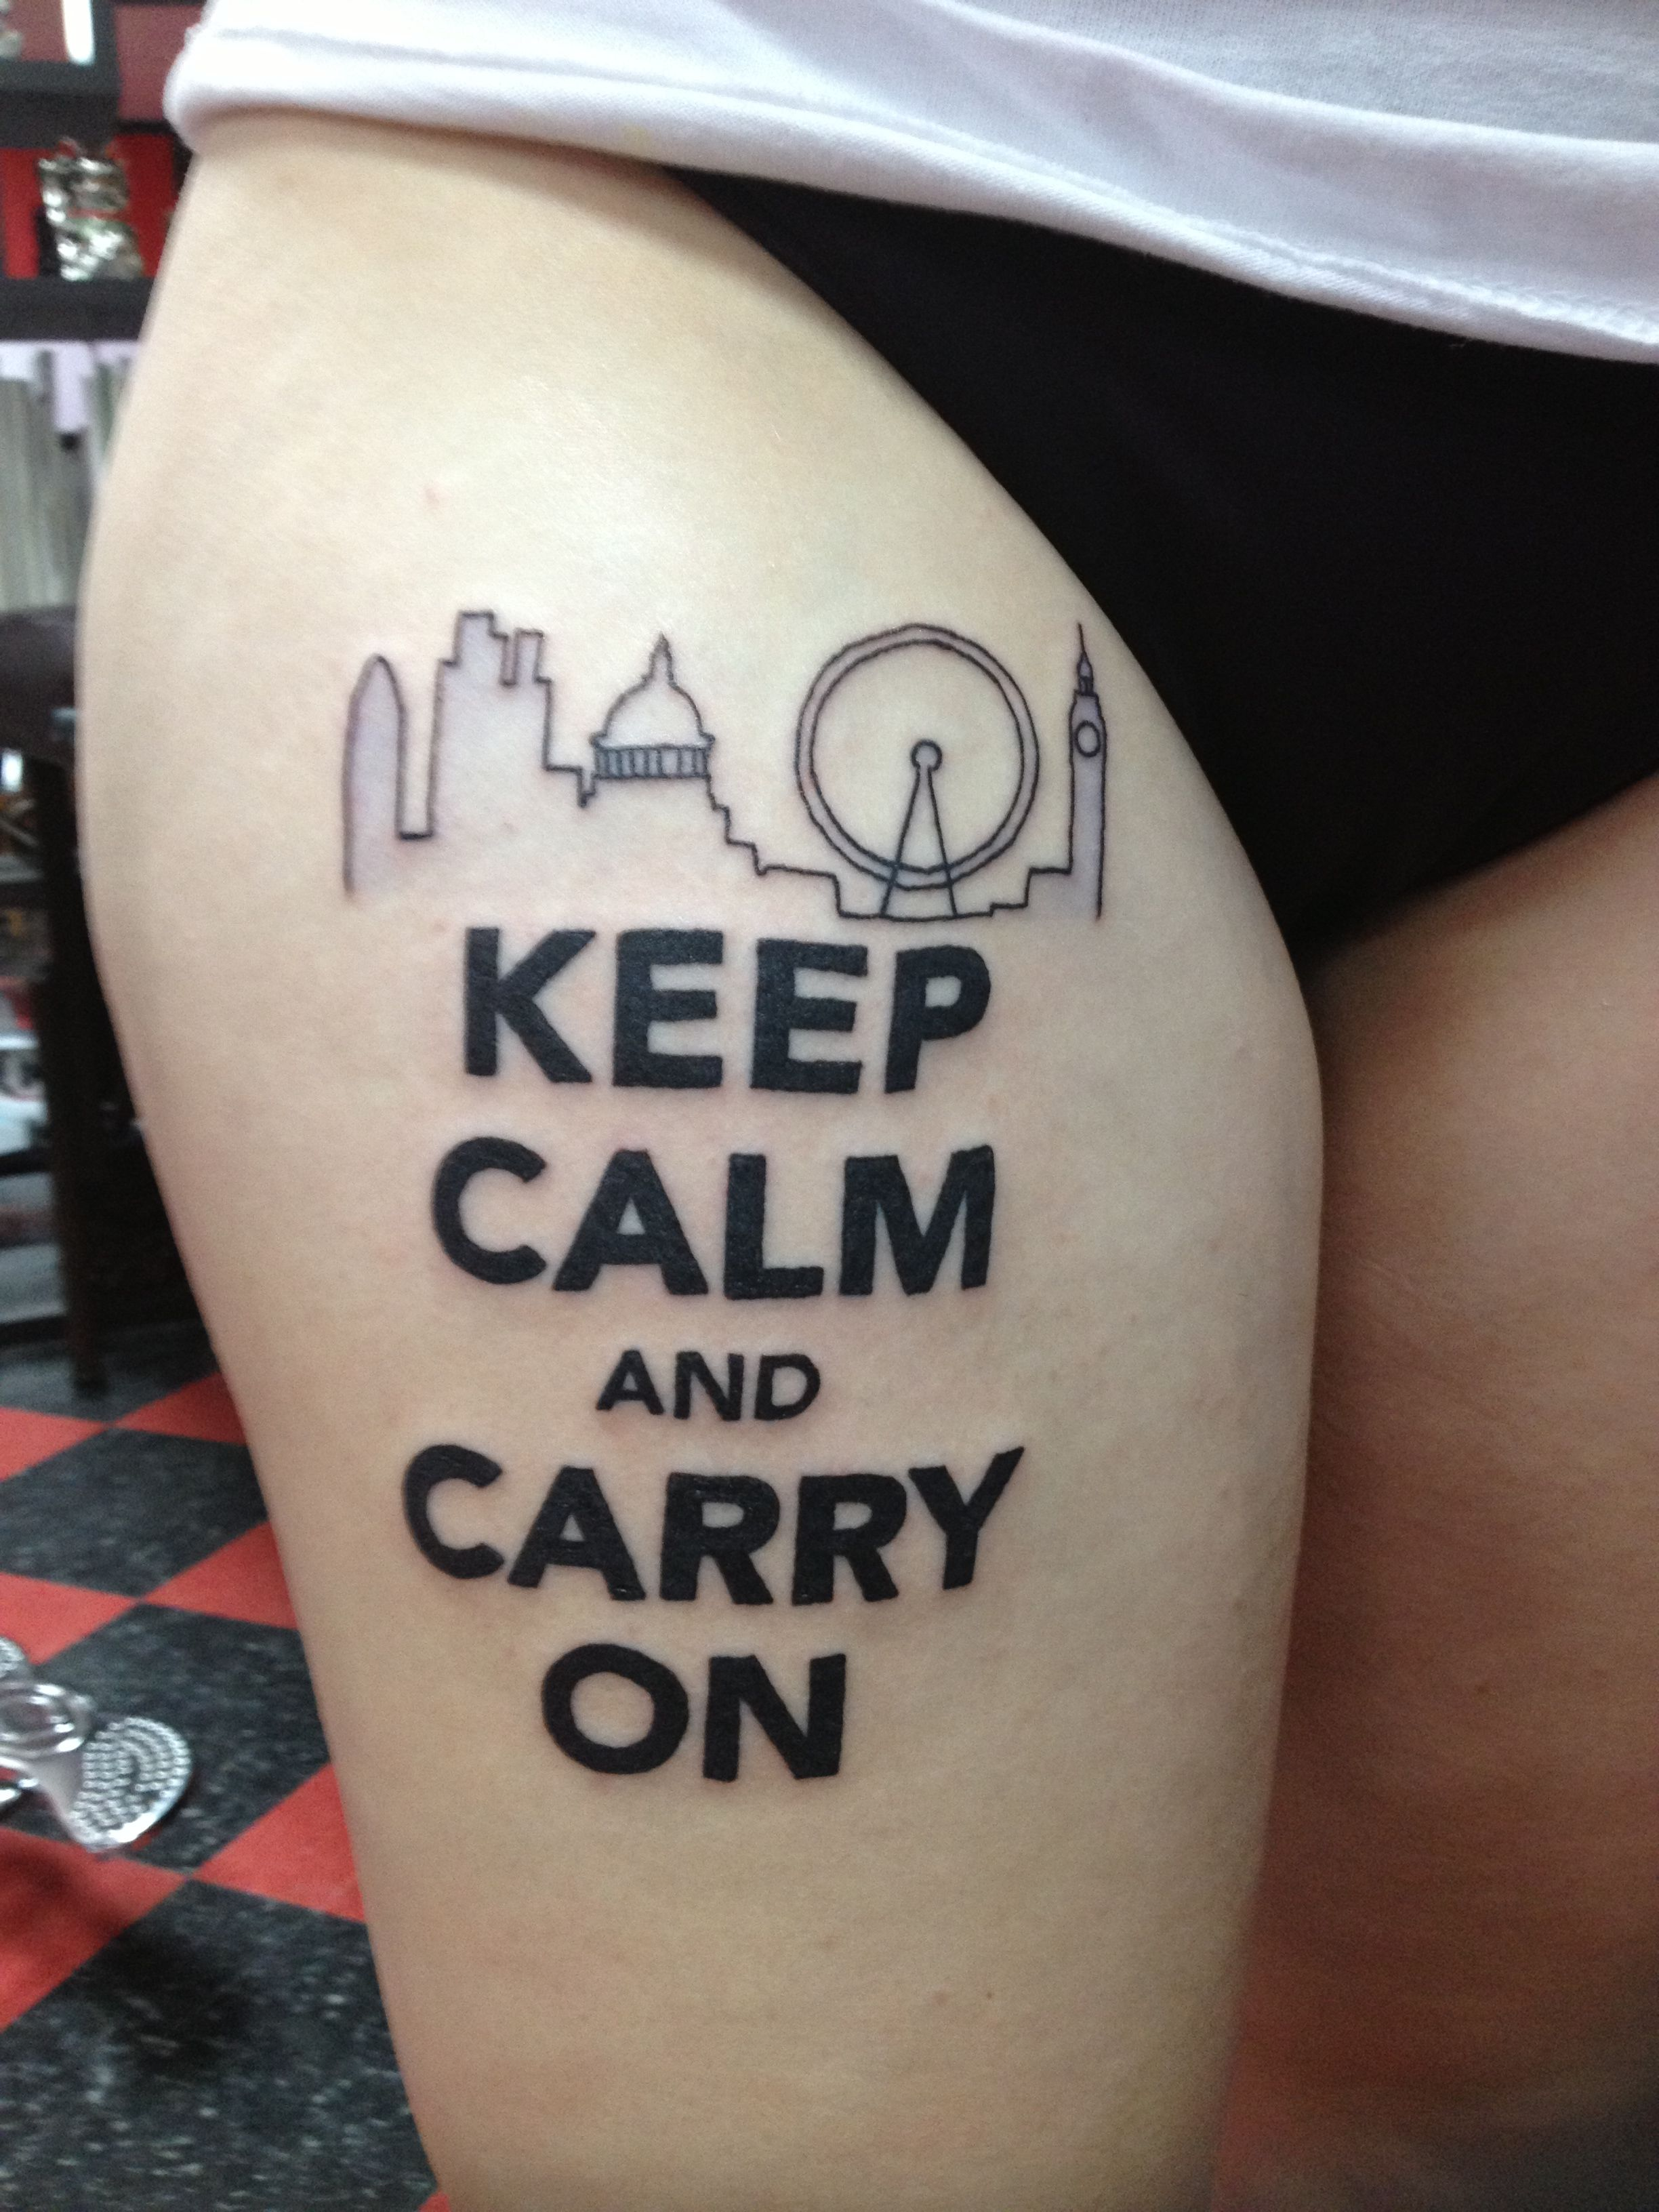 Leeslittlewonderland meaningful tattoos good ideas - Keep Calm And Carry On Tattoo With The London Skyline Like It But